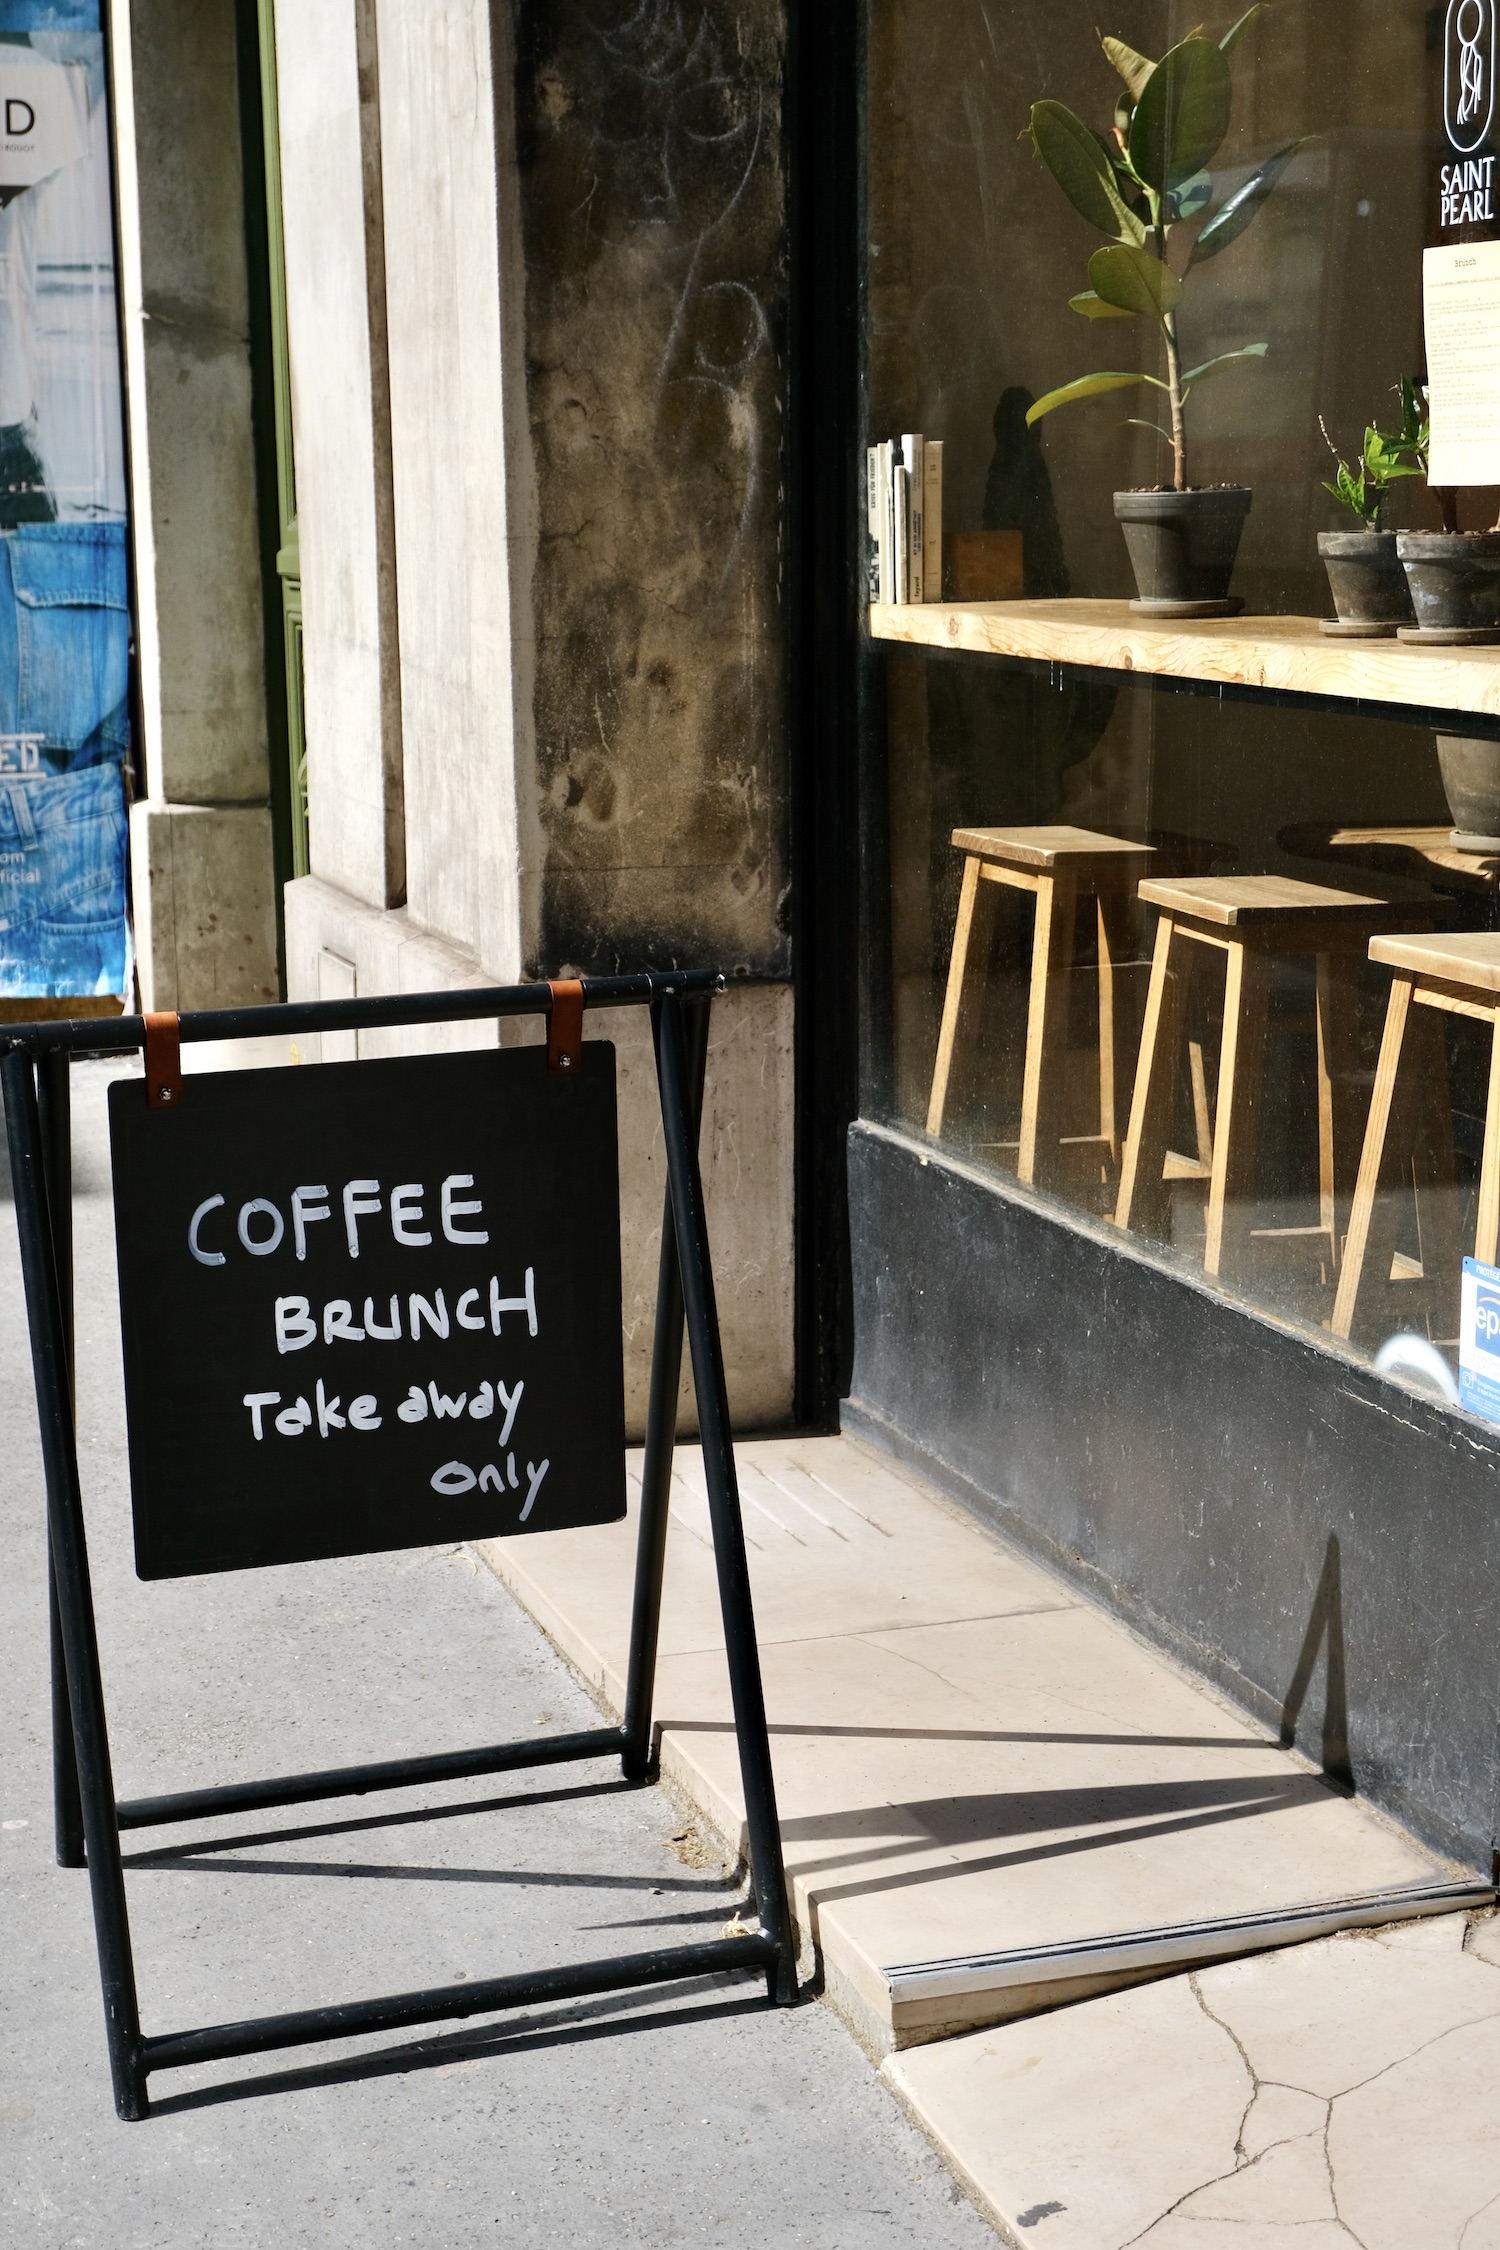 Saint Pearl to-go coffee sign